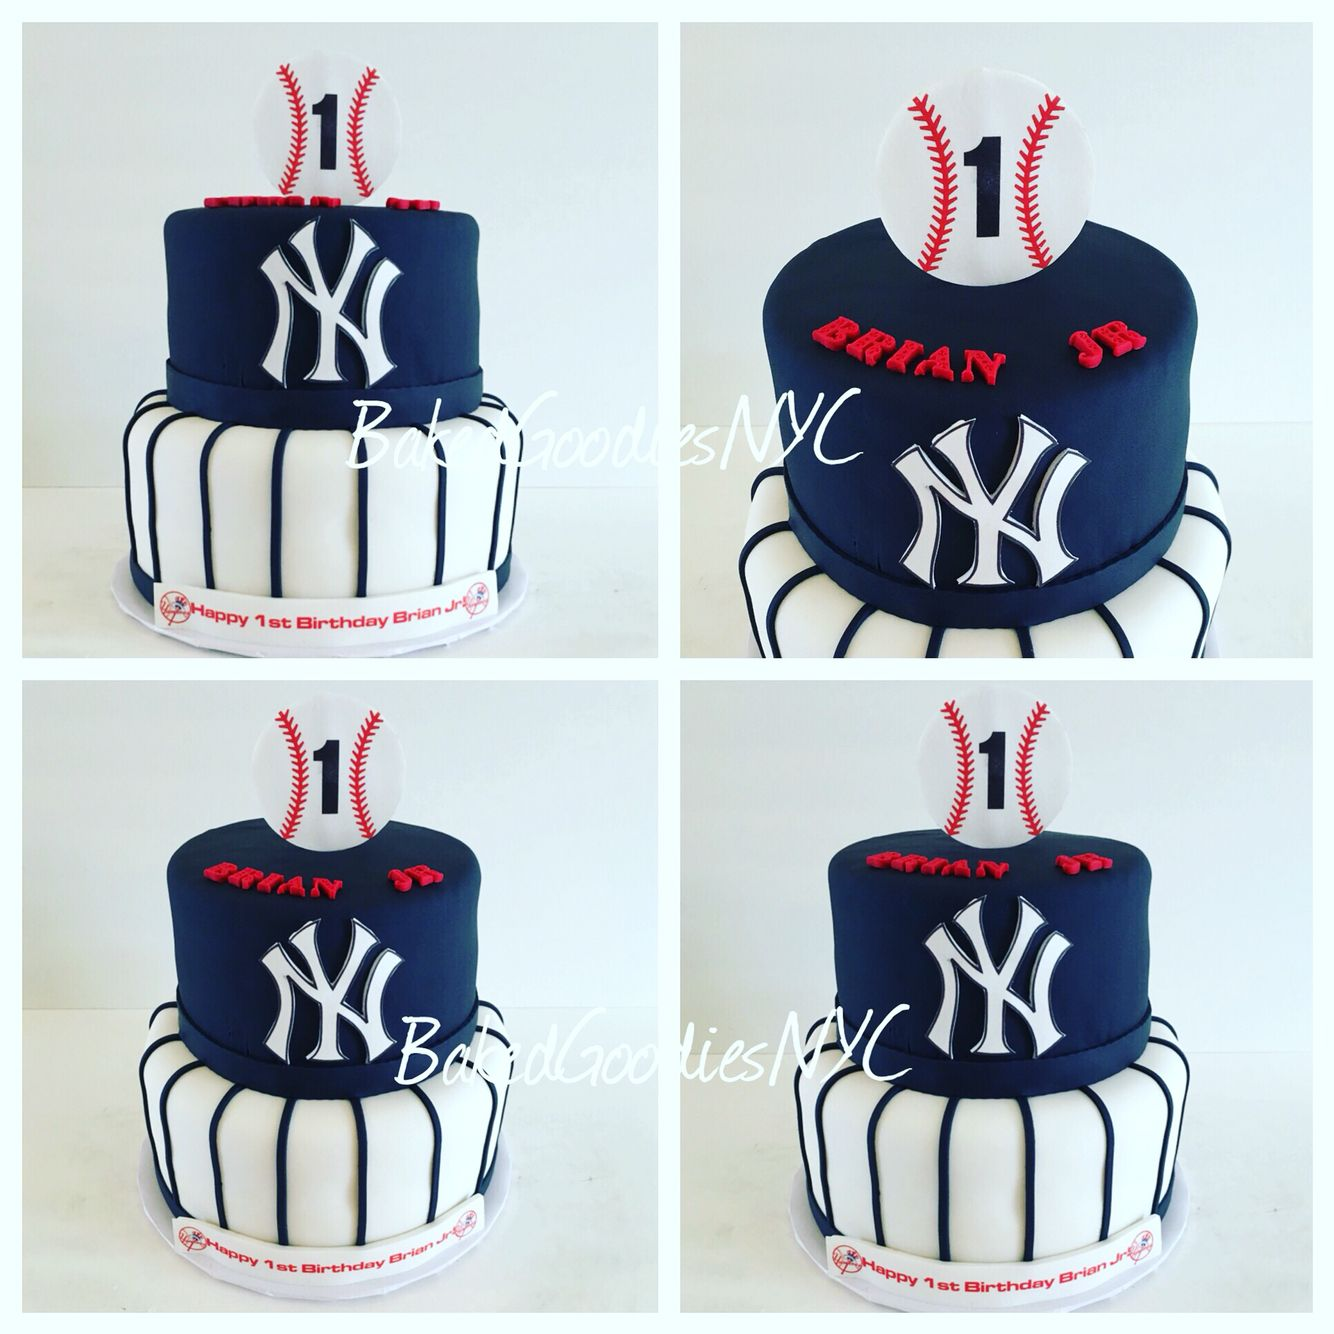 Ny Yankee Cake Baseball Birthday Cakes Birthday Cakes For Men Yankees Birthday Party